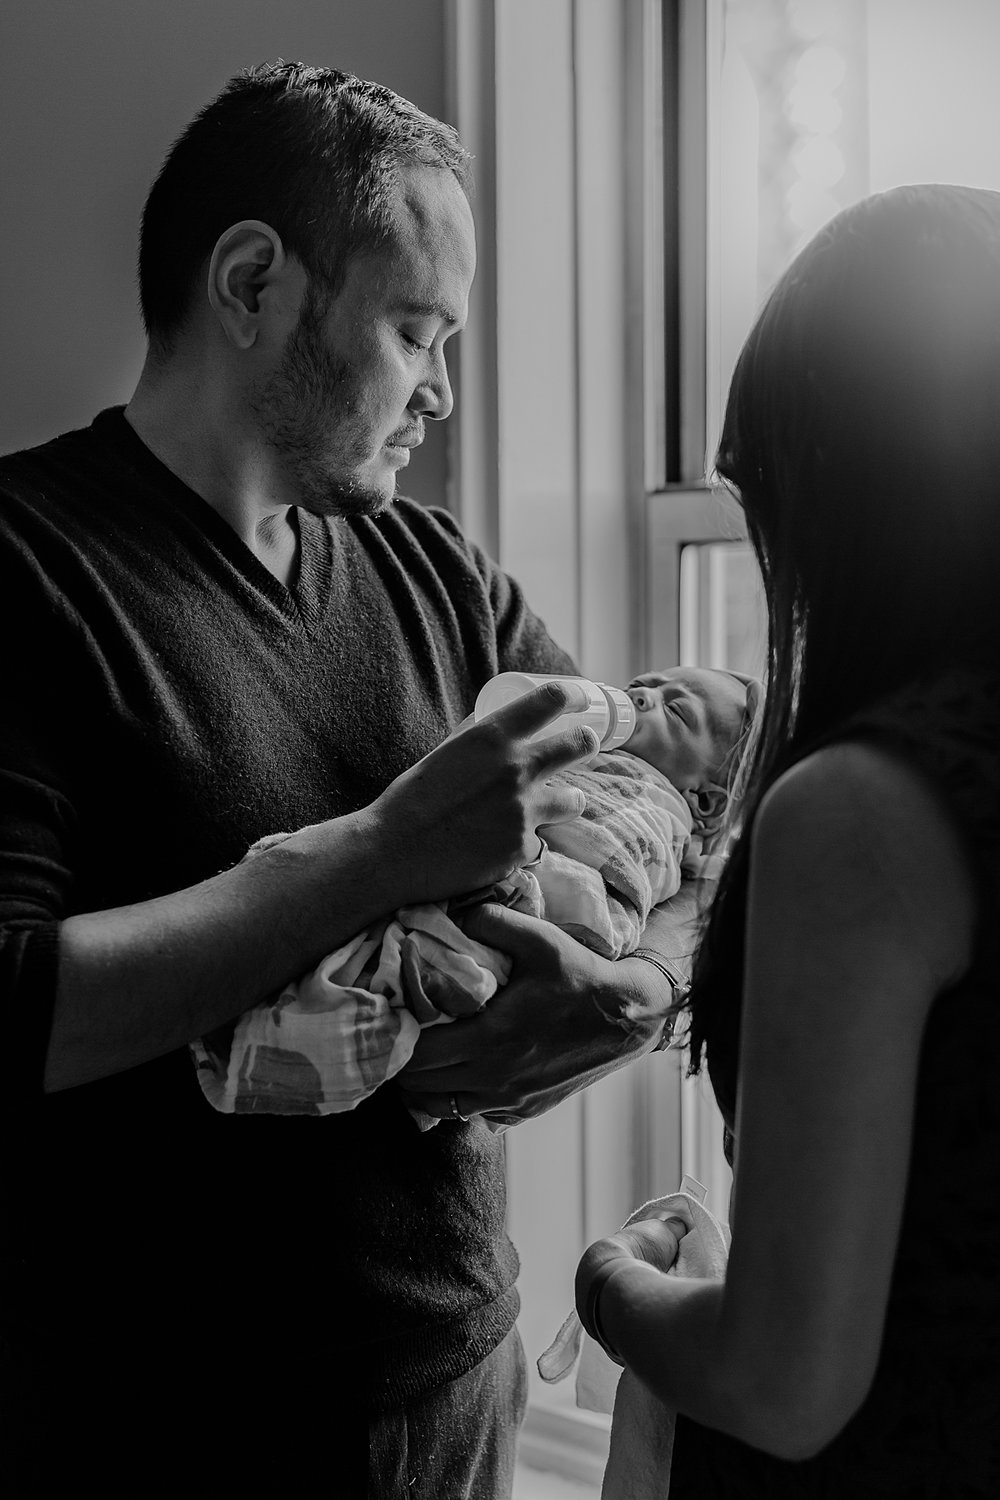 Orange County family photographer. Candid photo of mom and dad feeding their newborn baby boy during in home newborn photo session with Krystil McDowall Photography